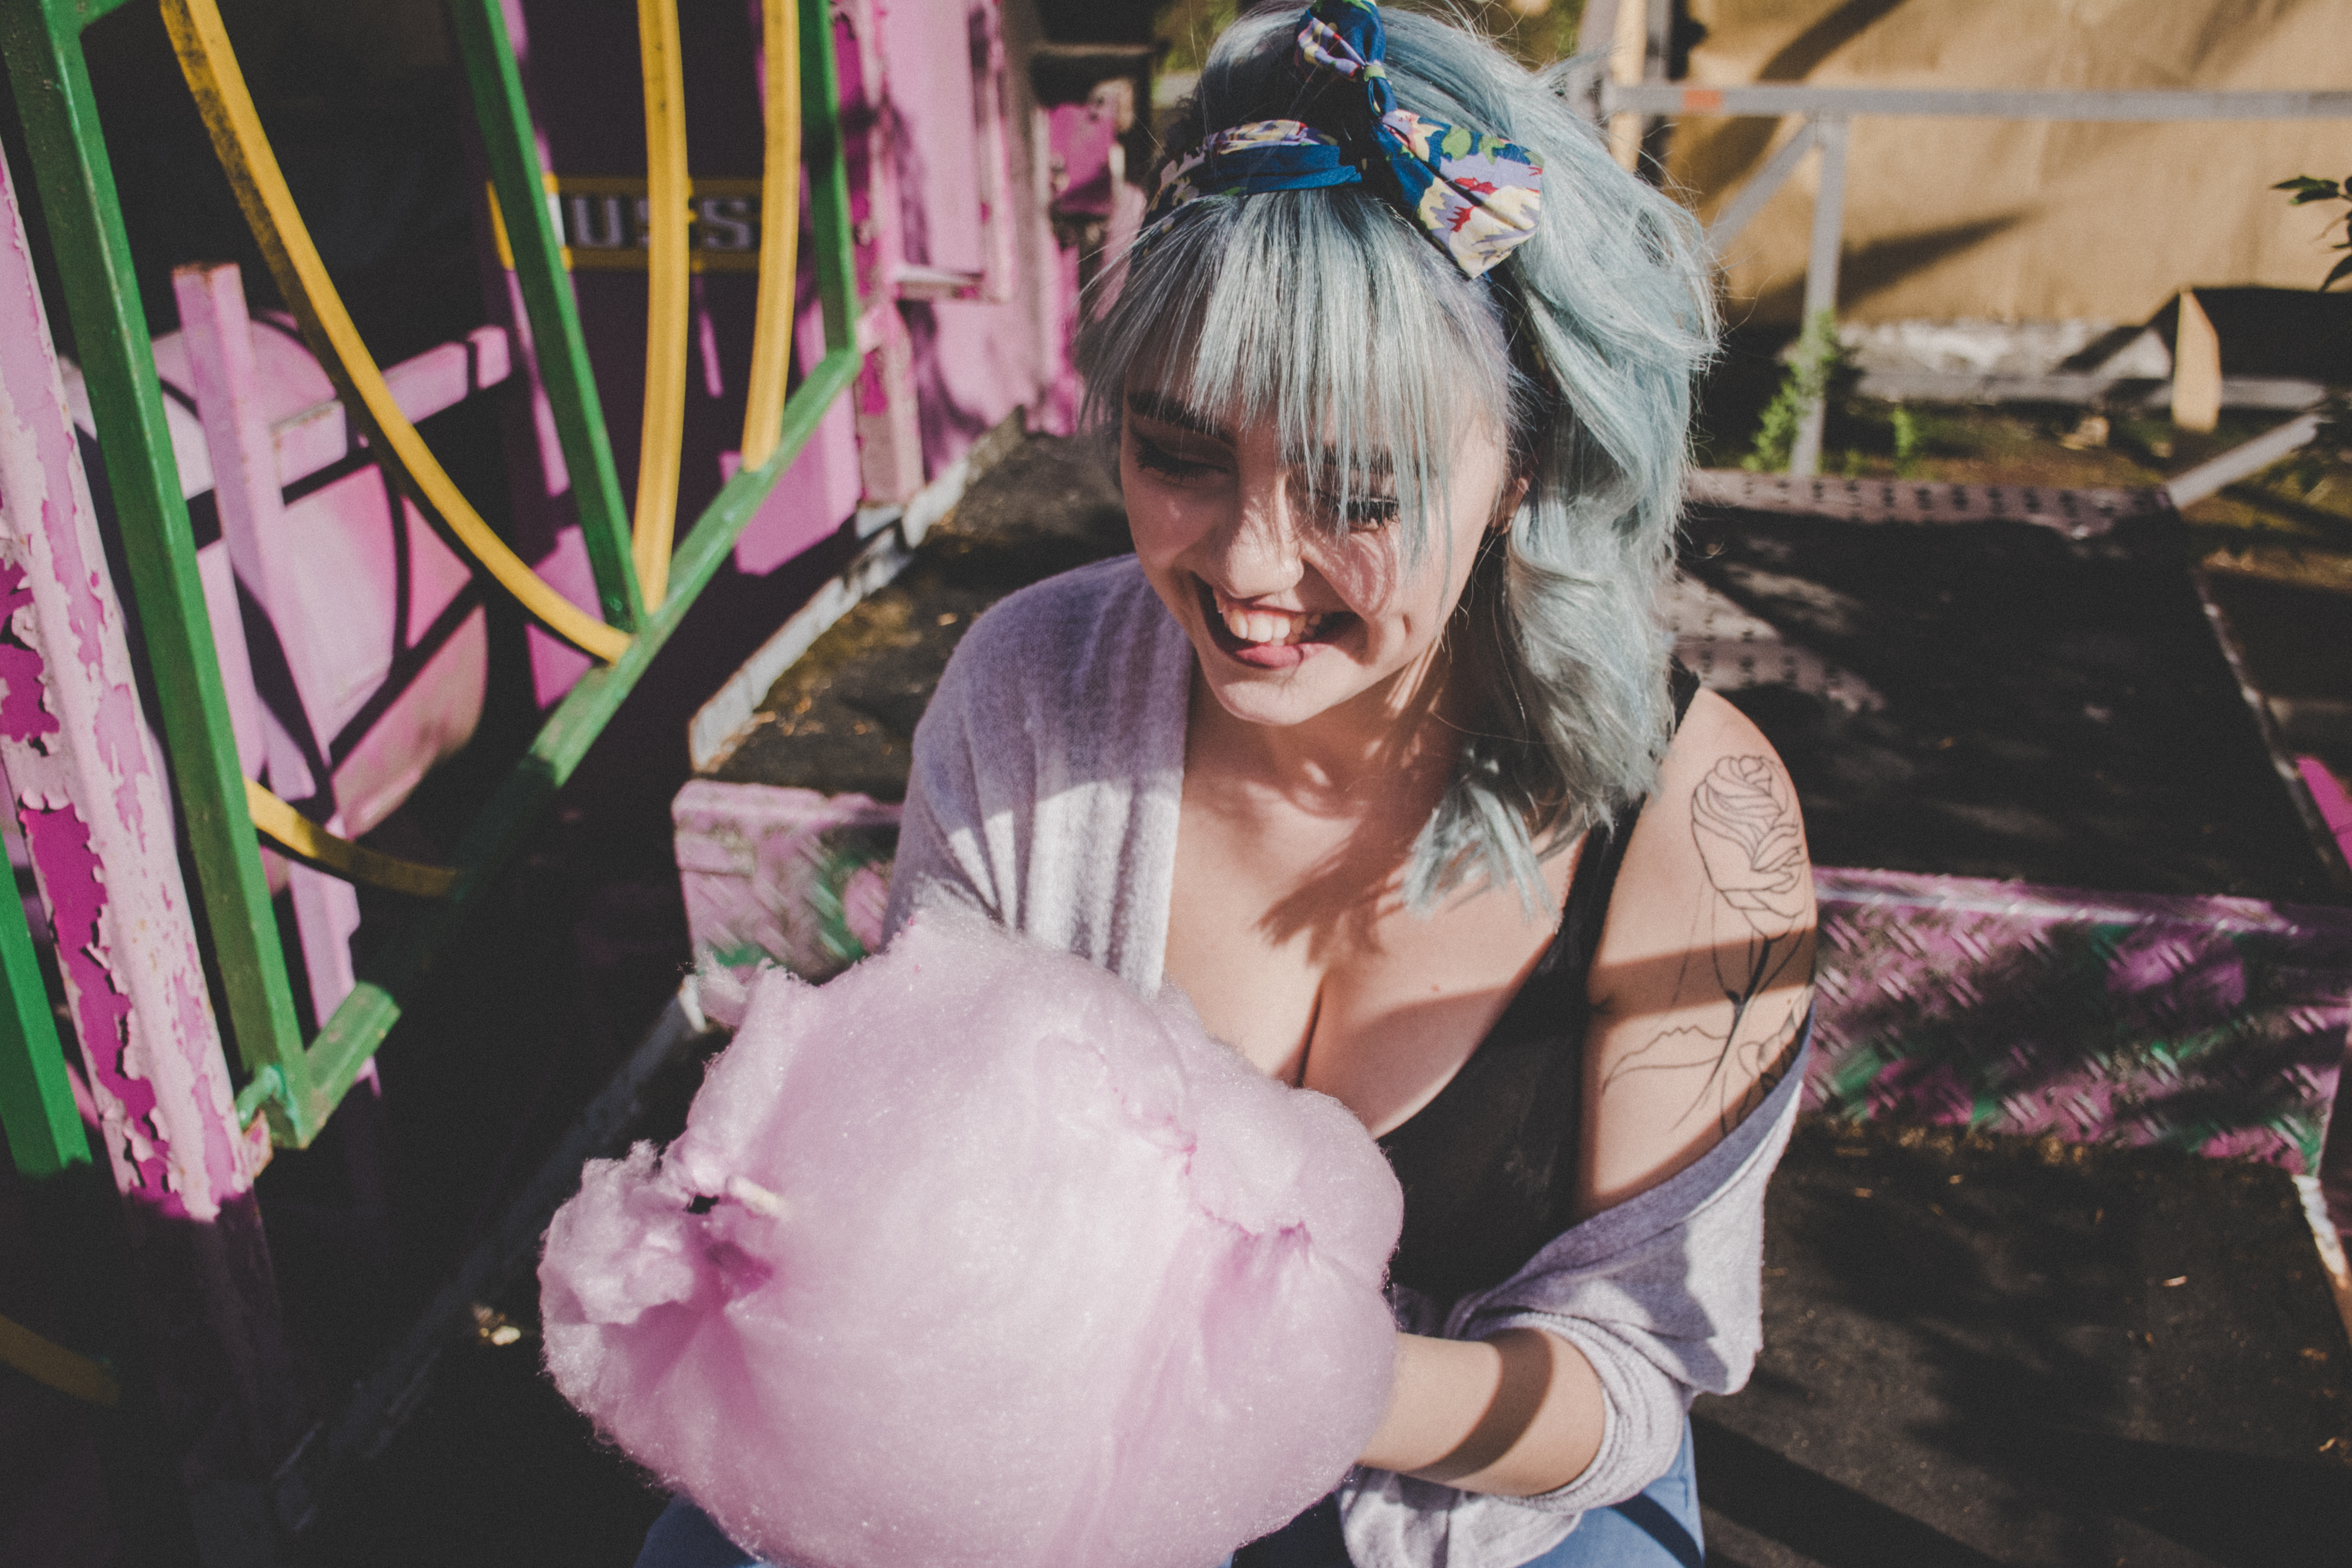 Woman with Candy Floss